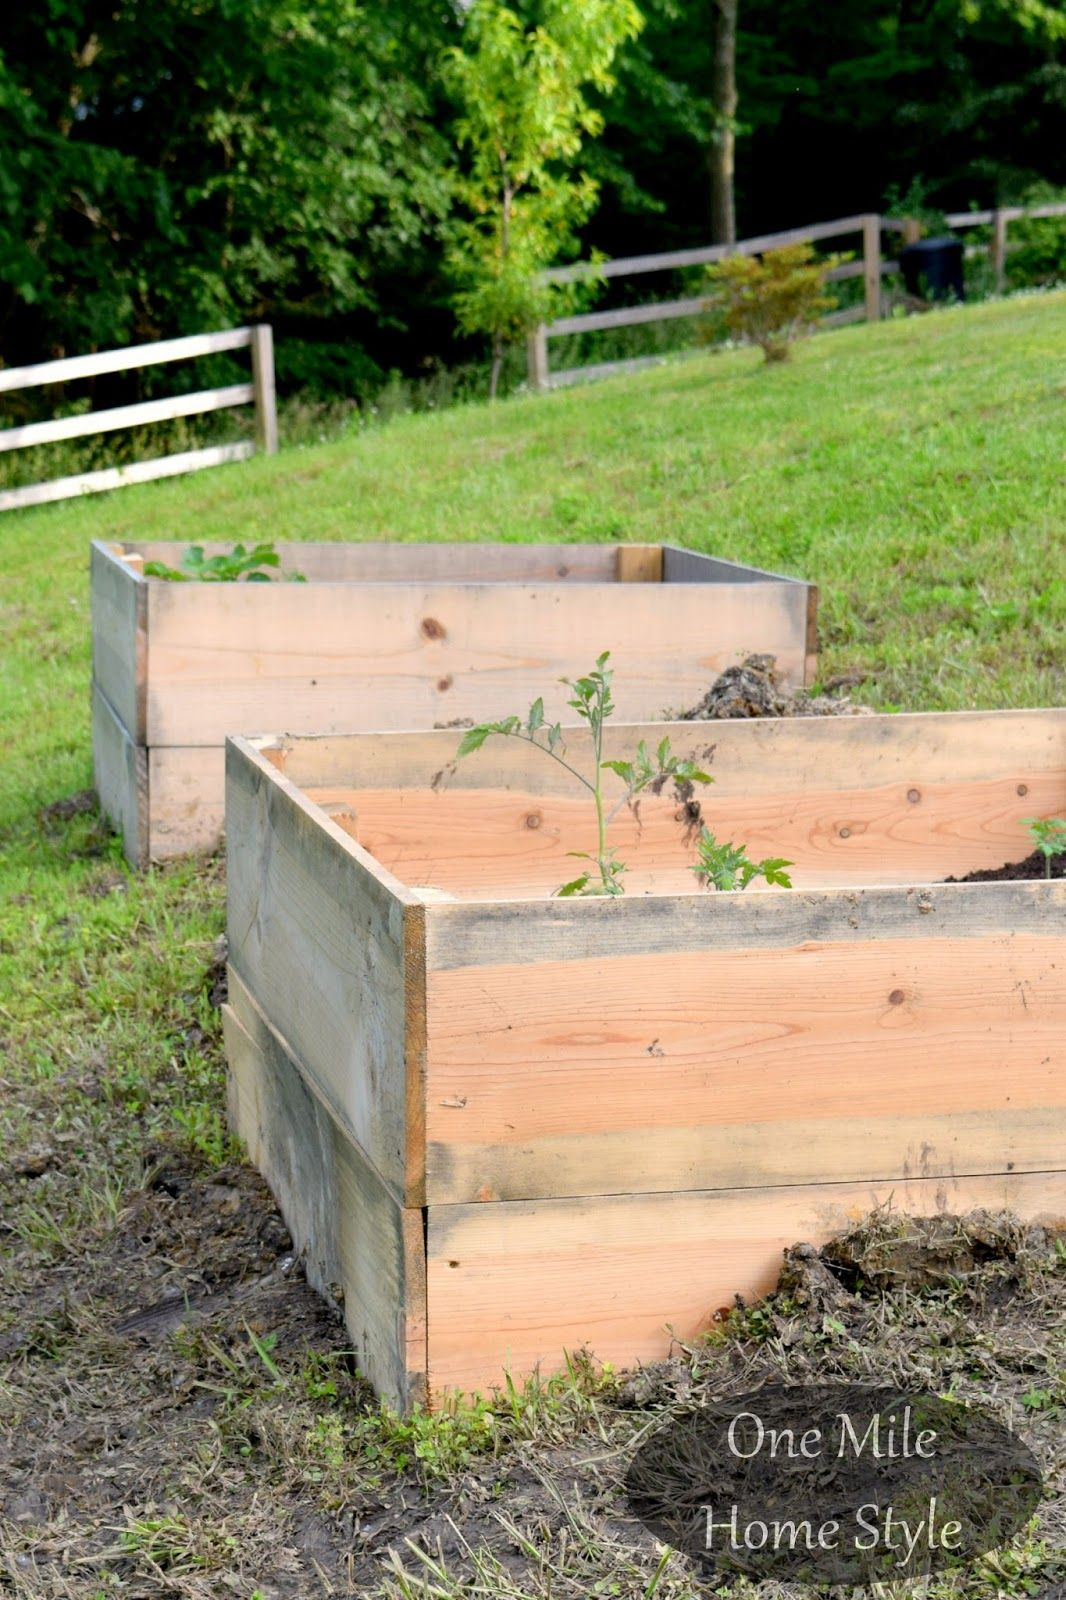 Hillside Gardening Made Easy Garden Boxes Raised Vegetable